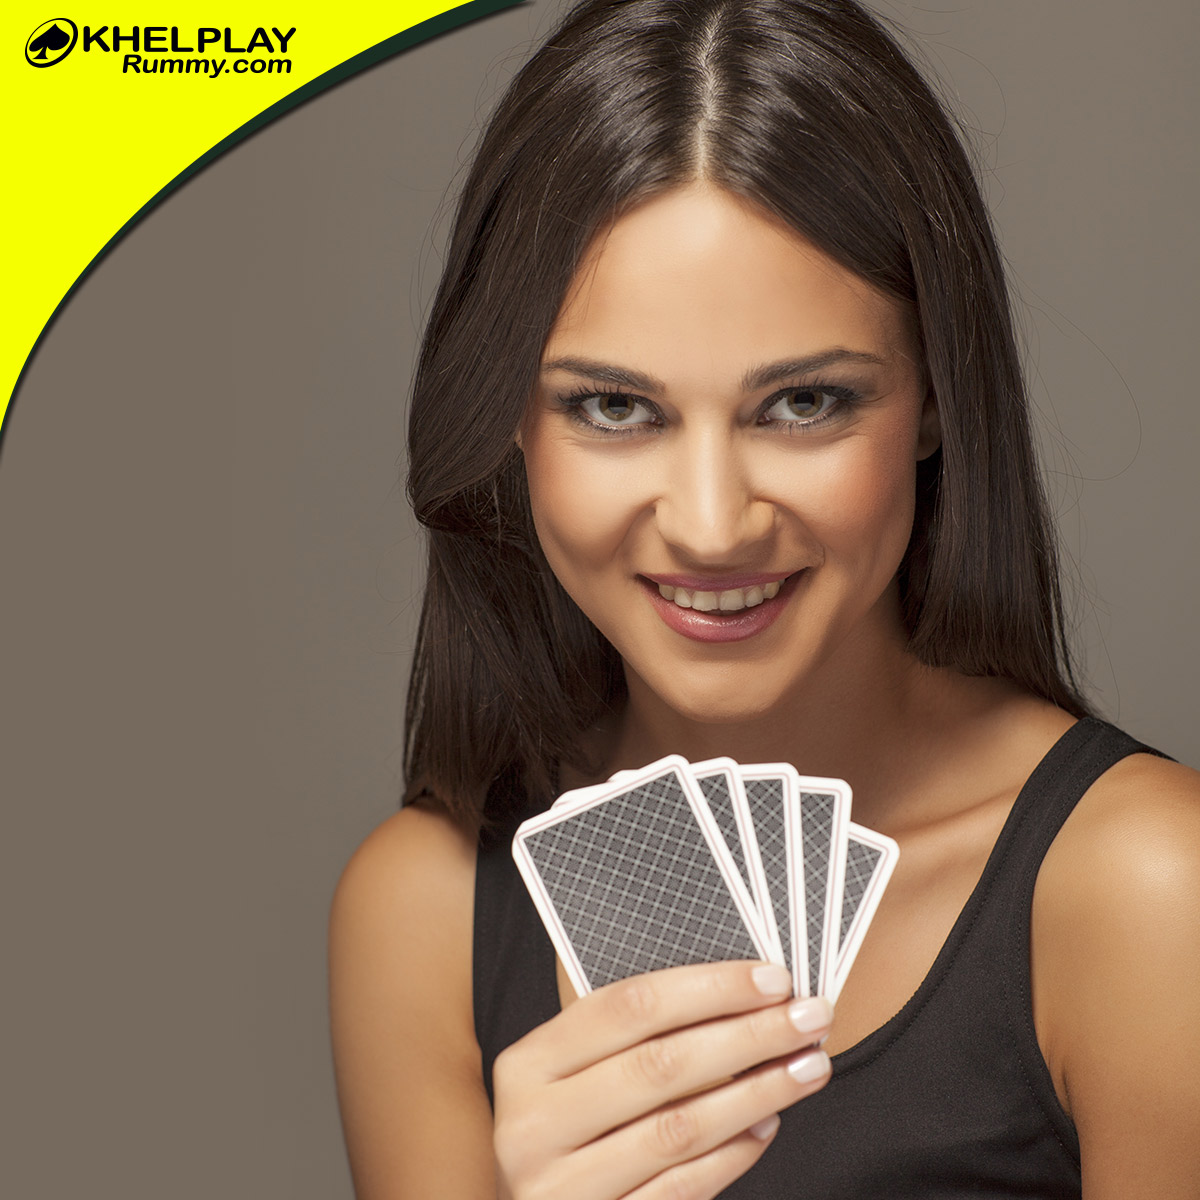 4 Thoughts Every Rummy Players Will Relate To